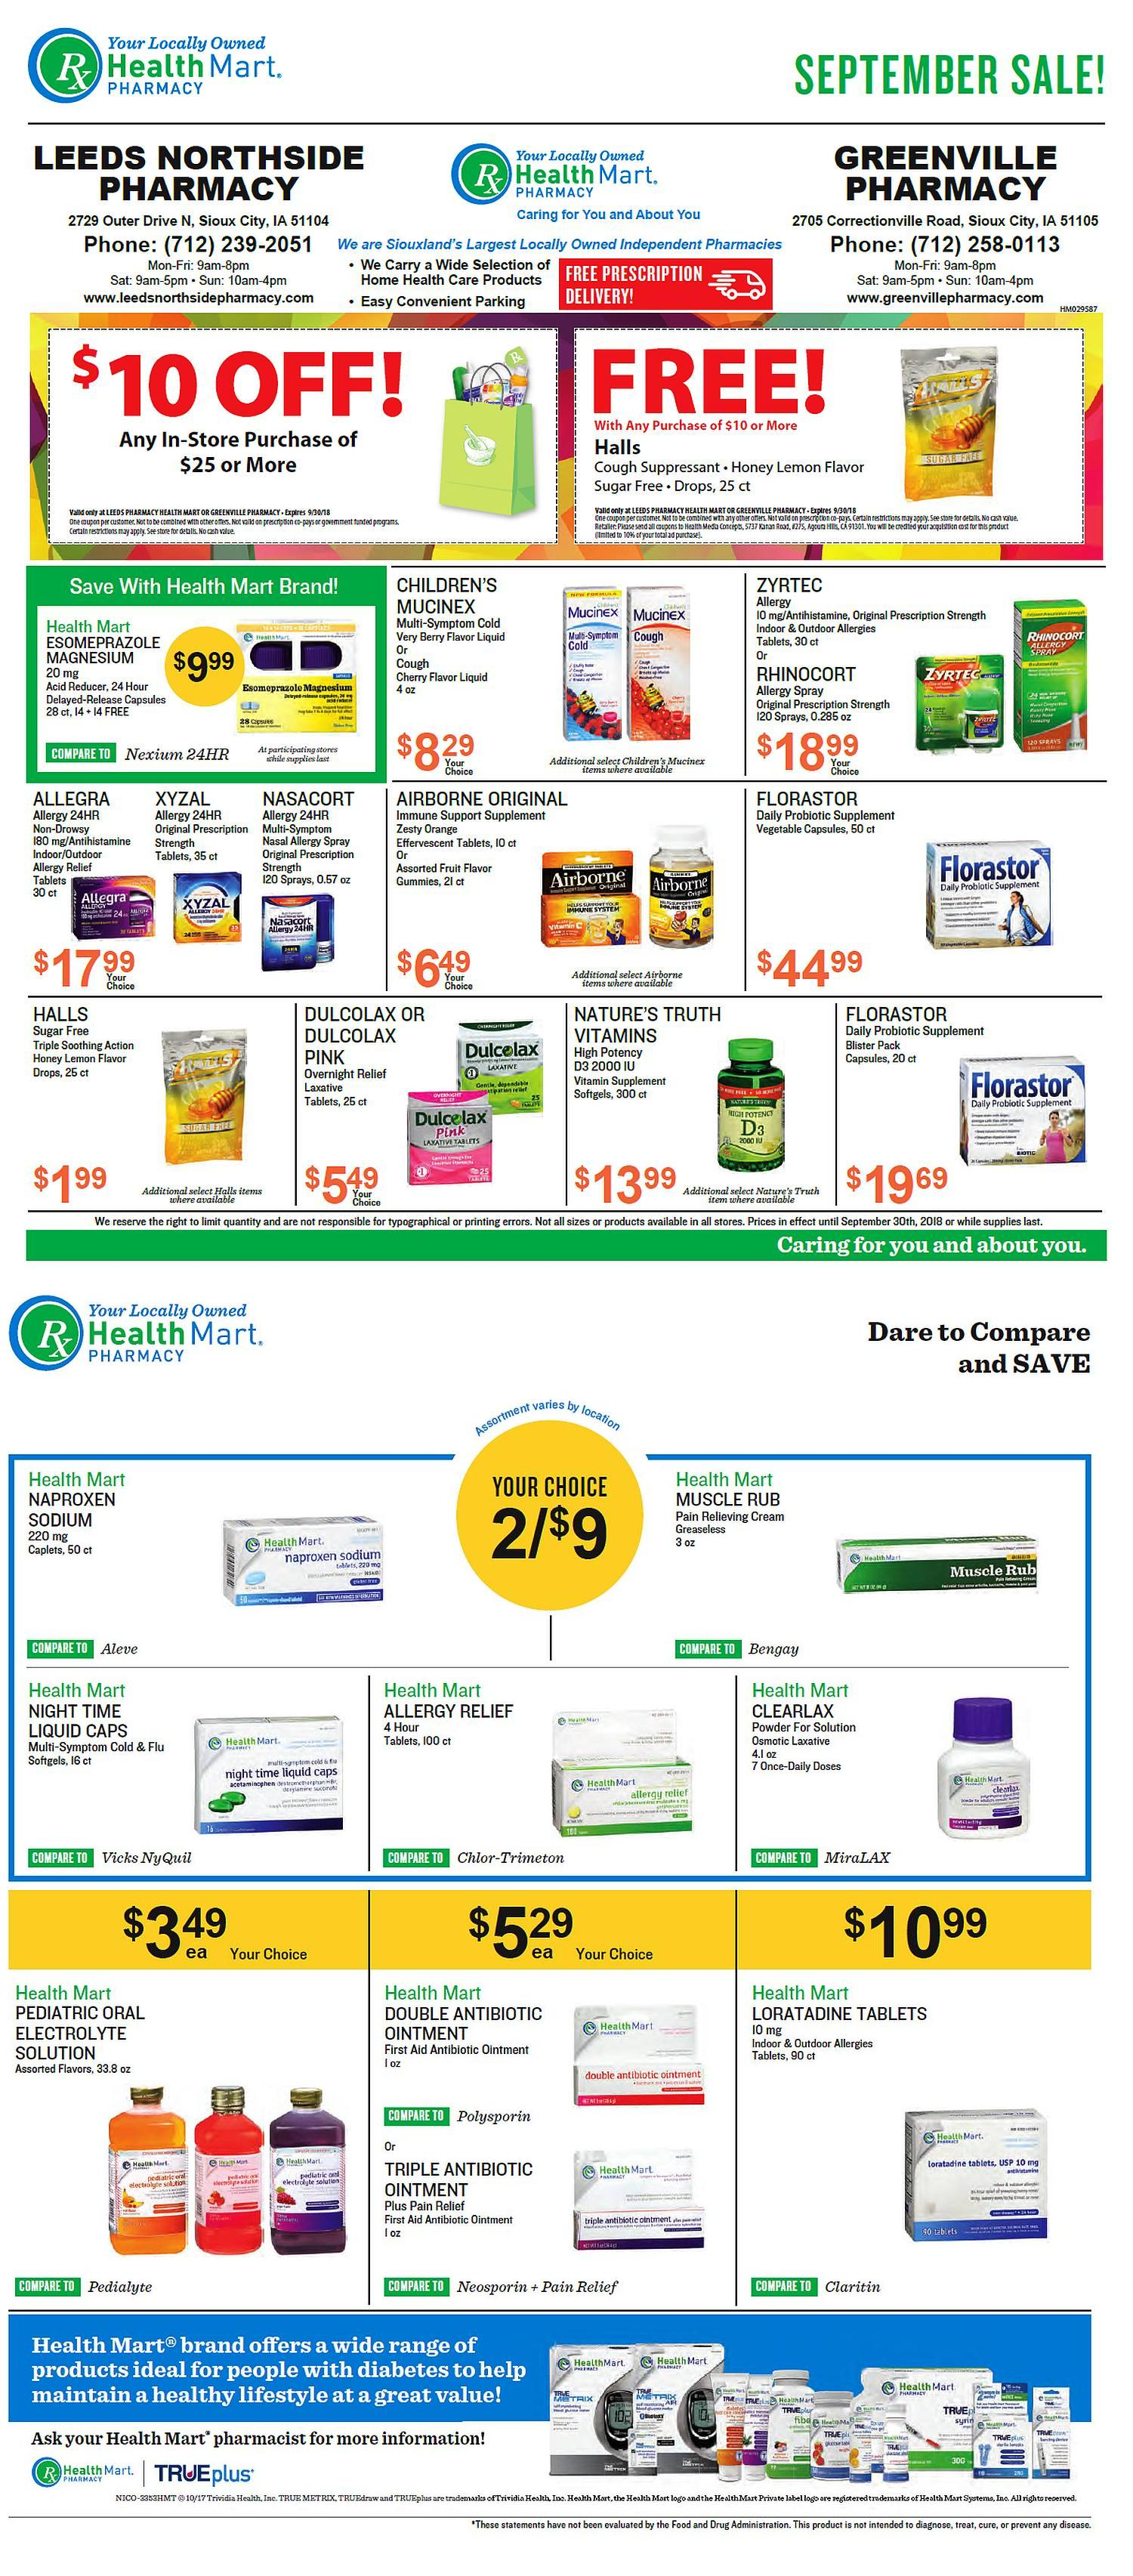 Greenville Pharmacy & McKesson Special Items For August Savings